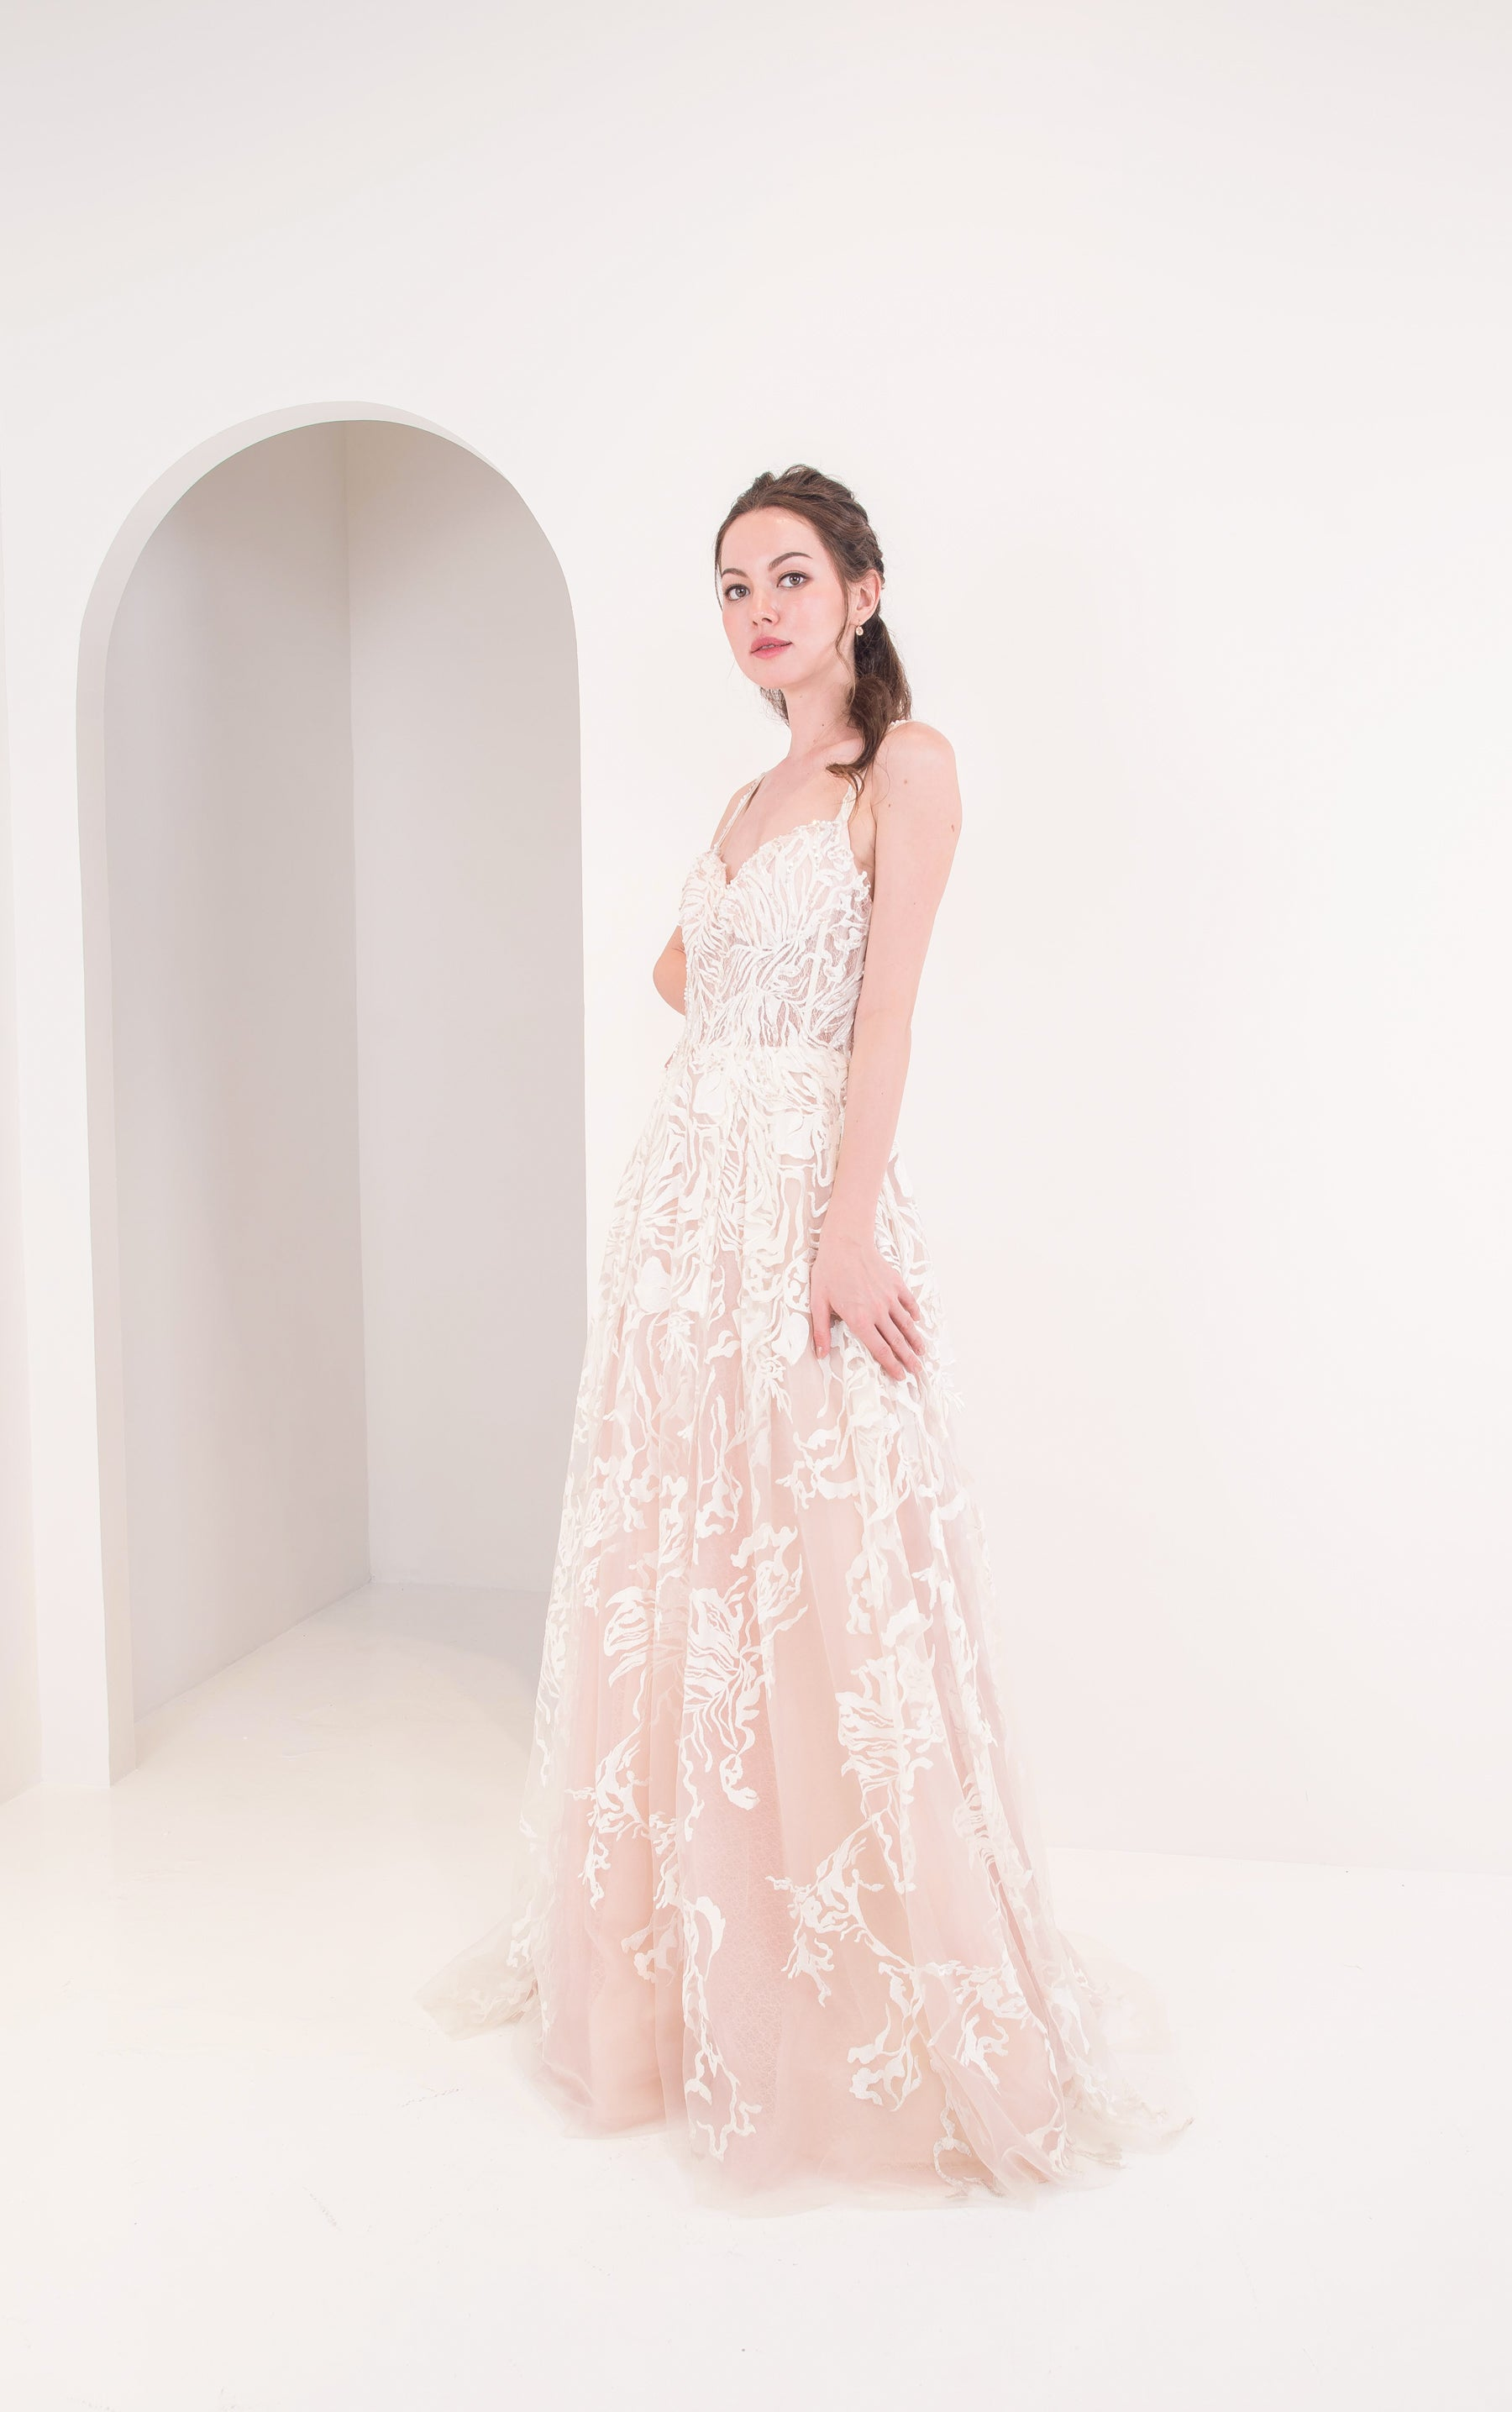 J Grace White Floral Gown